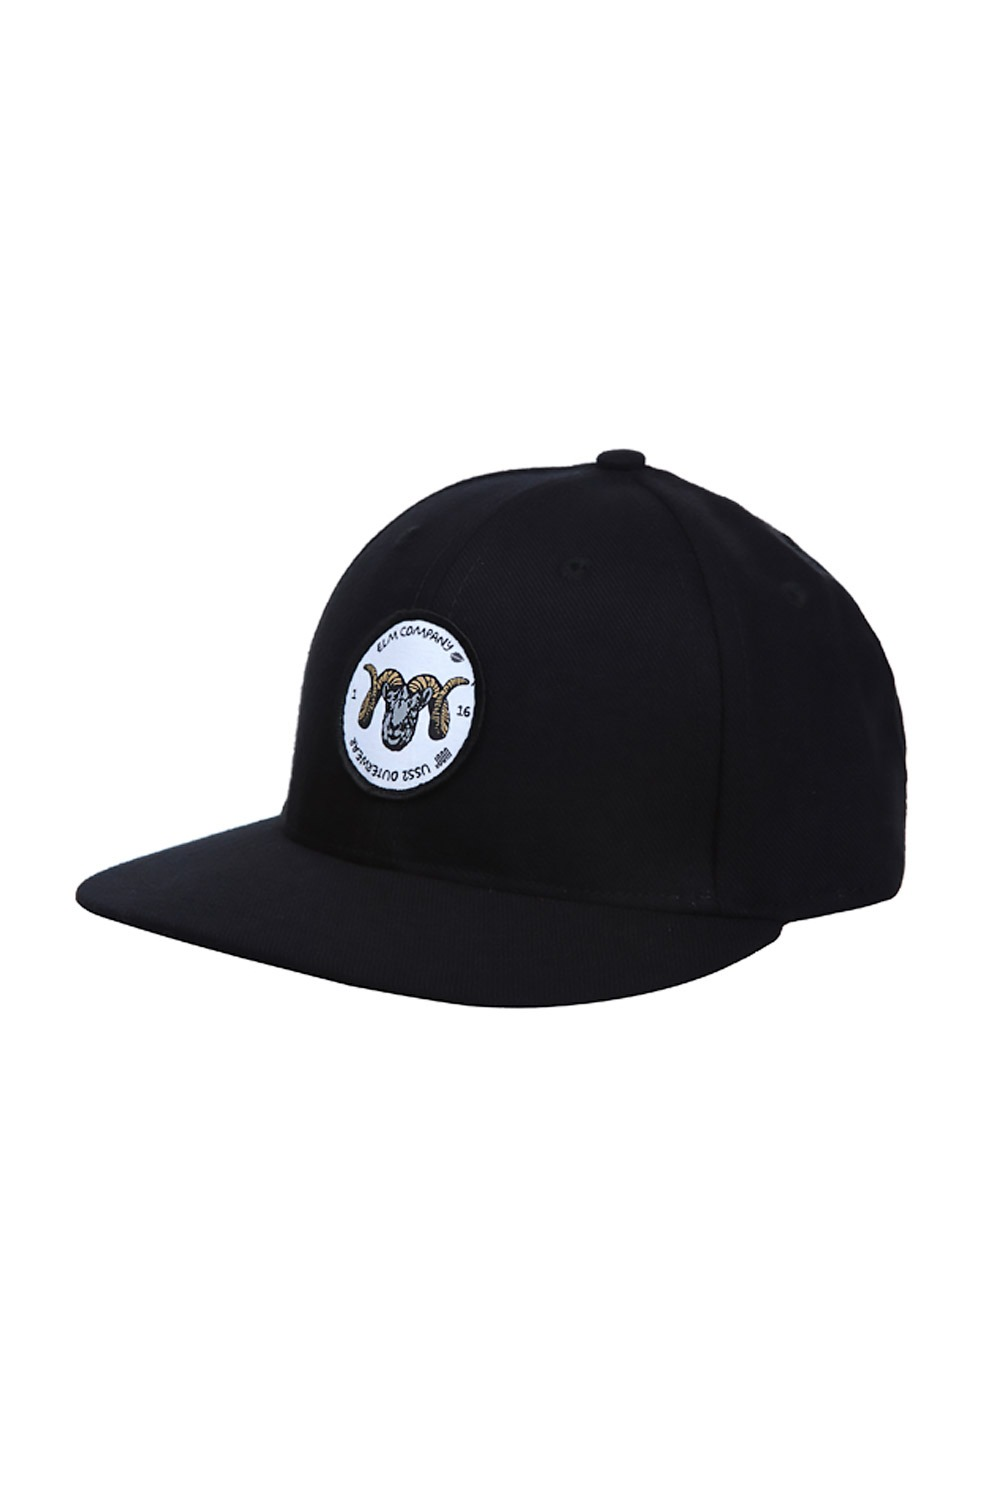 USS2/IU2501BK[어스투 X ELM 스냅백] SNAPBACK BK - MADE IN USA_FIU2501BK